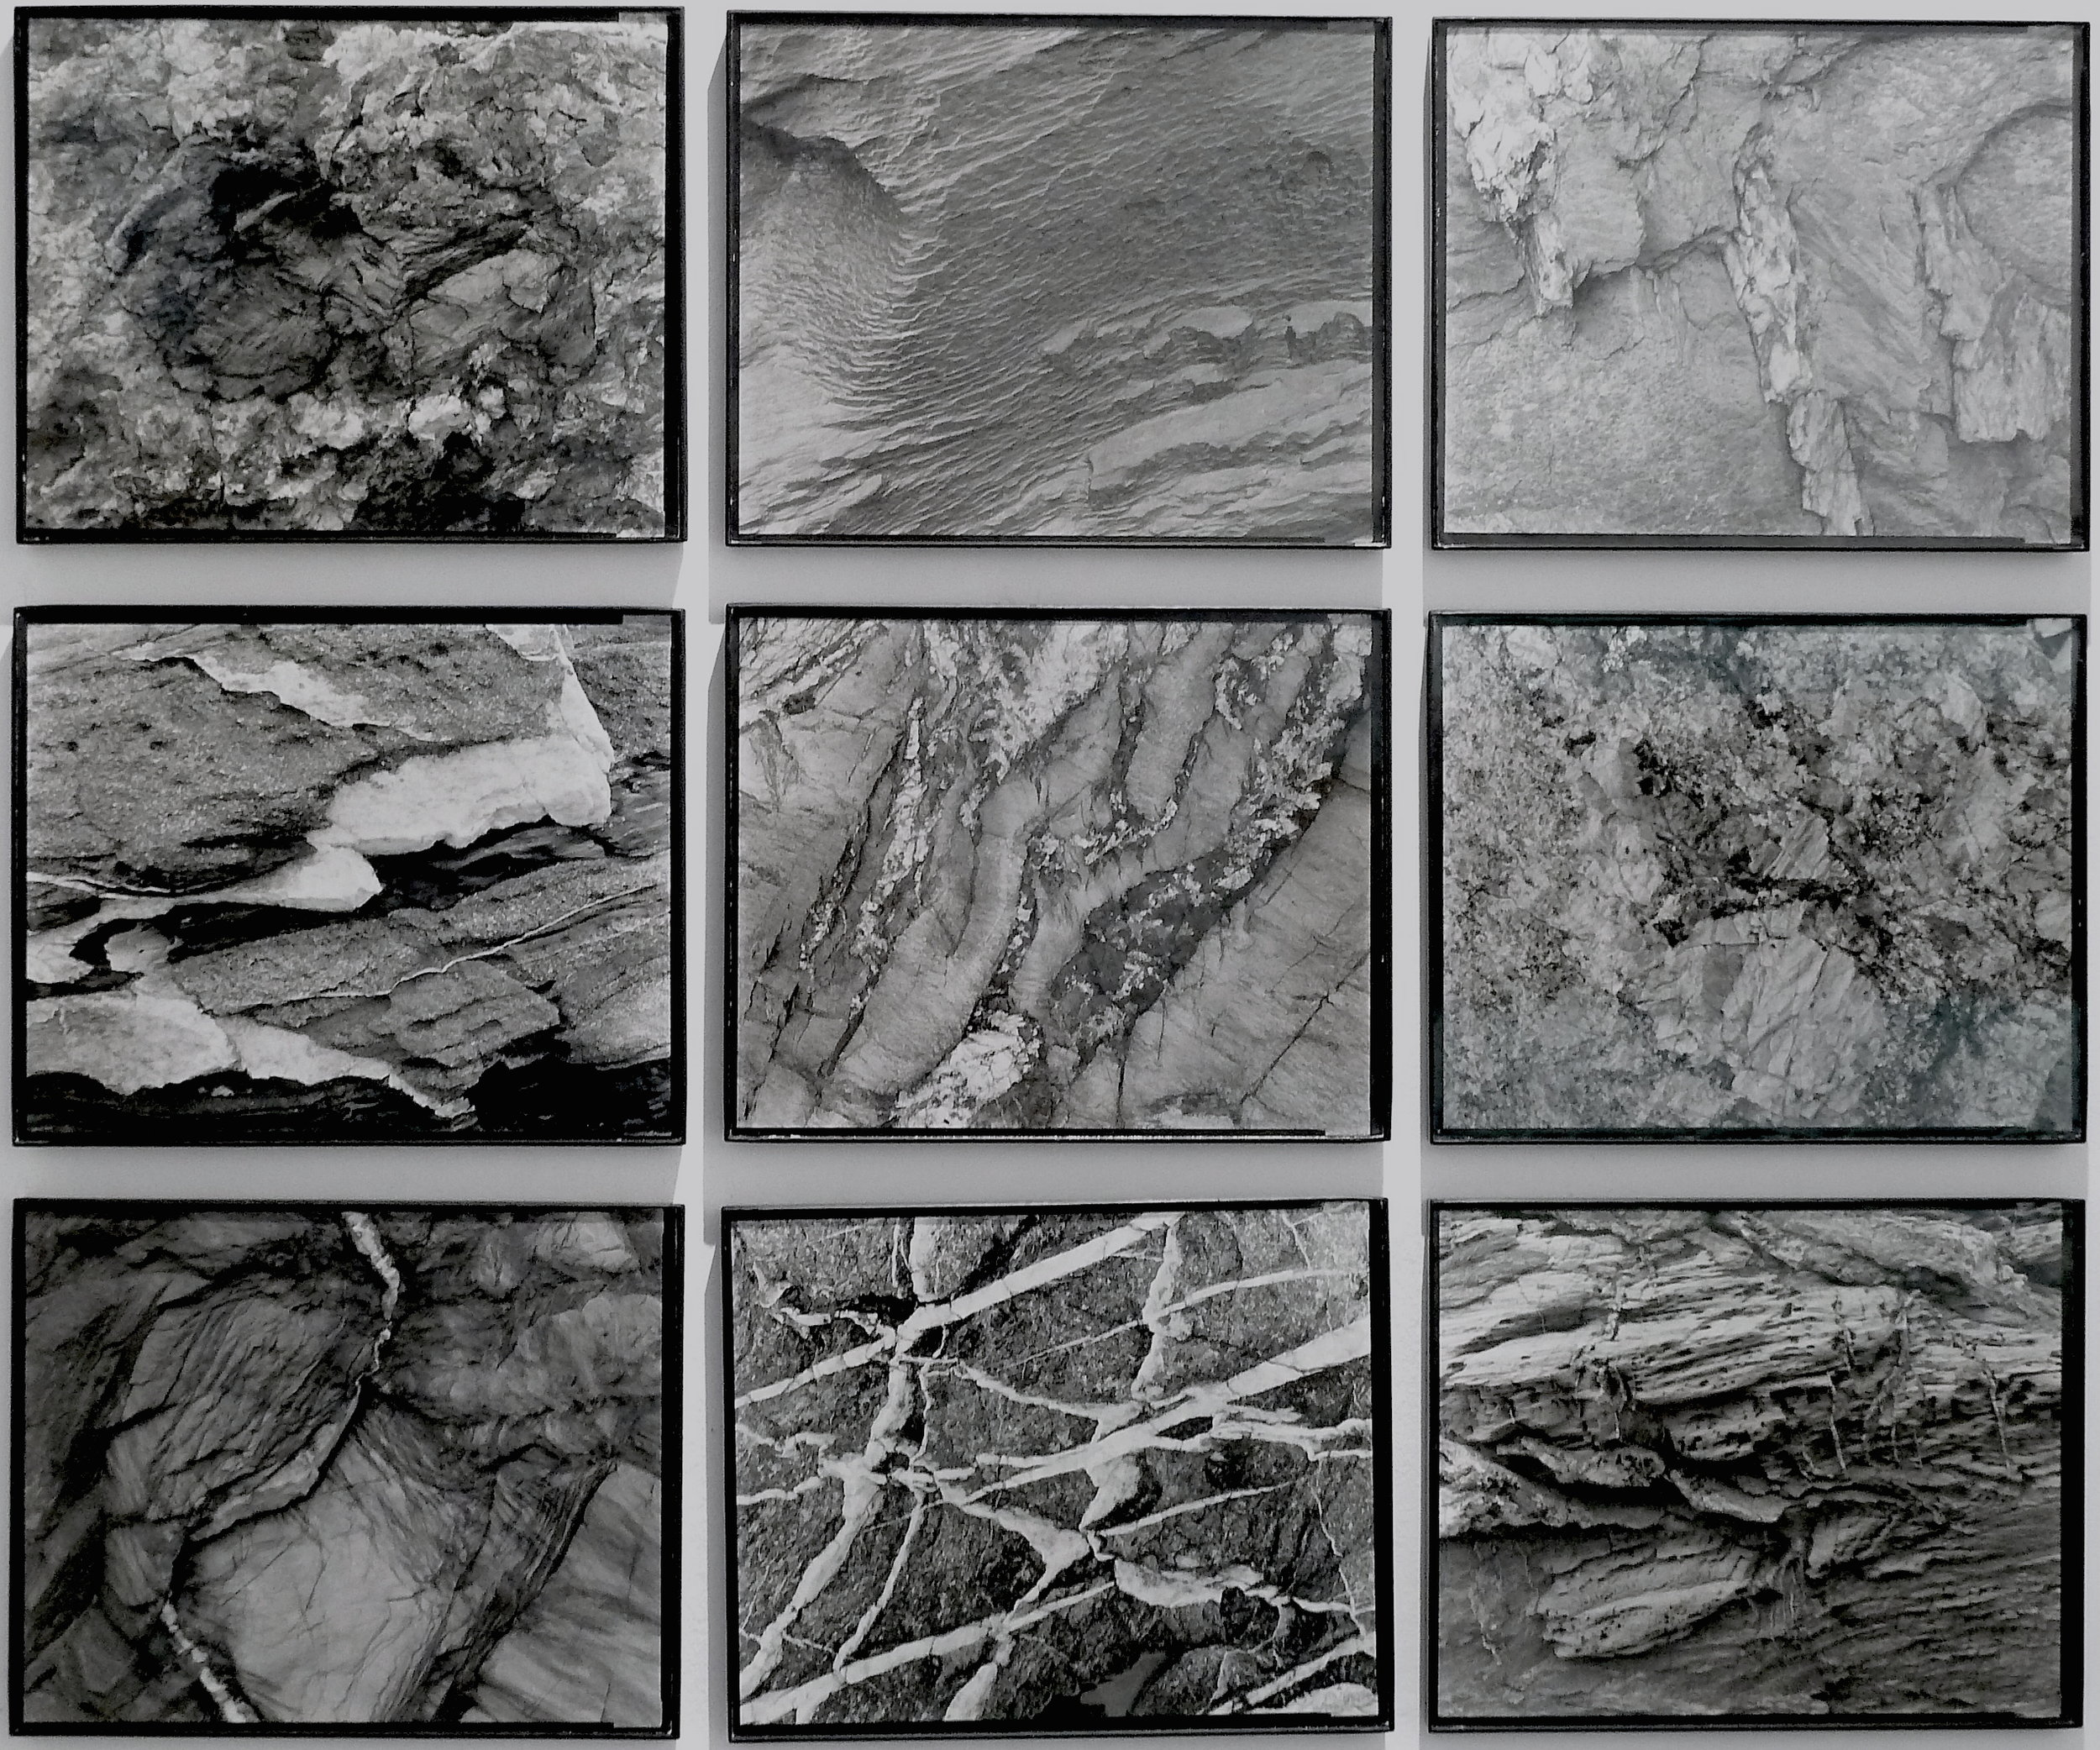 7. Untitled (grid of 9), 2000-2003